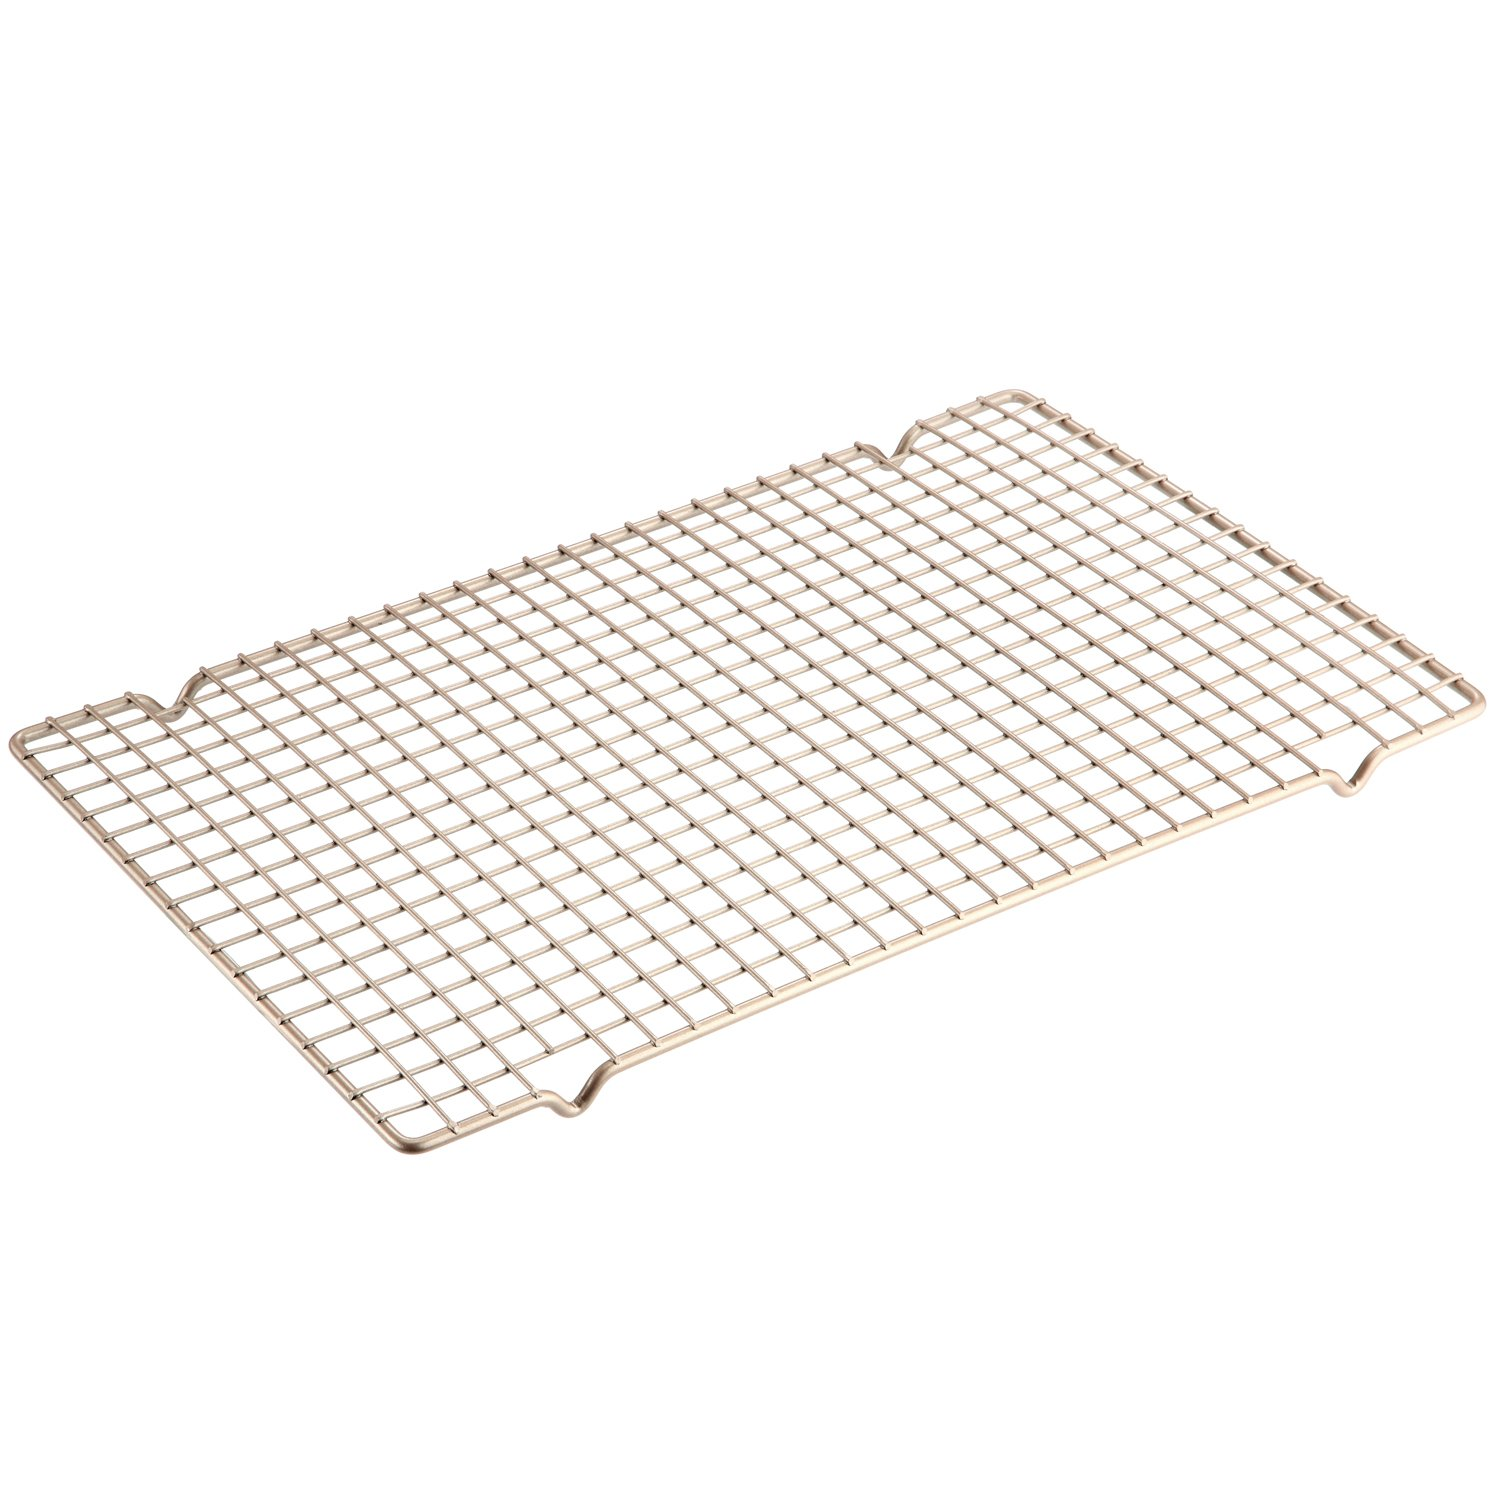 CHEFMADE Baking and Cooling Rack, 16-Inch Non-Stick Bold-Grid Design Wire Rack, FDA Approved for Oven Baking (Champagne Gold)